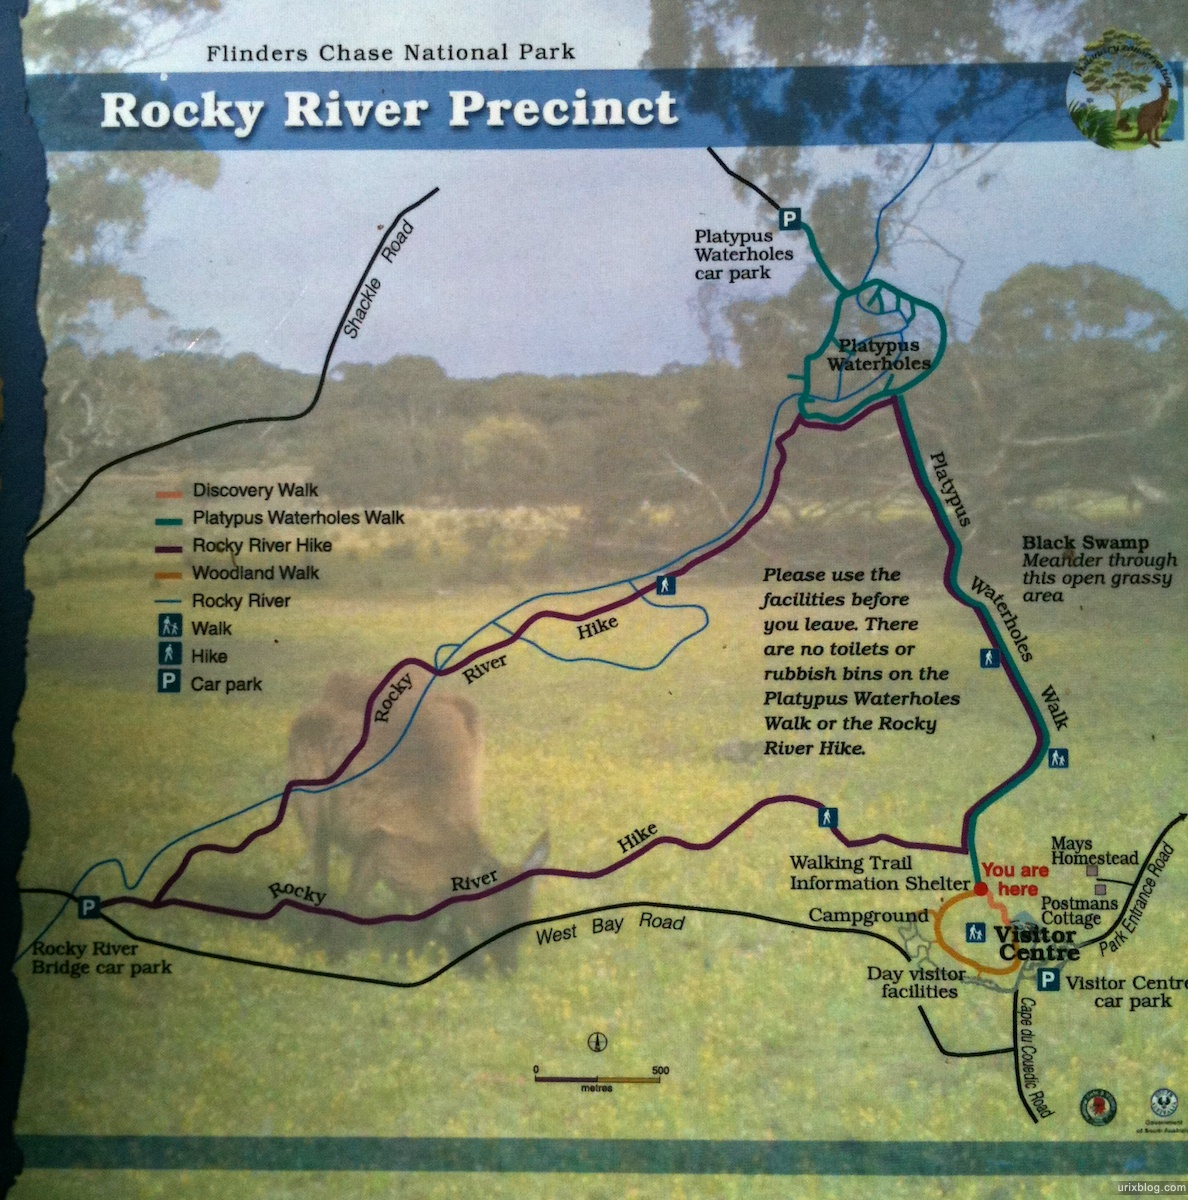 2011 South Australia, Kangaroo Island, Остров Кенгуру, Южная Австралия, Flinders Chase, Platypus Waterholes and Rocky River Hike